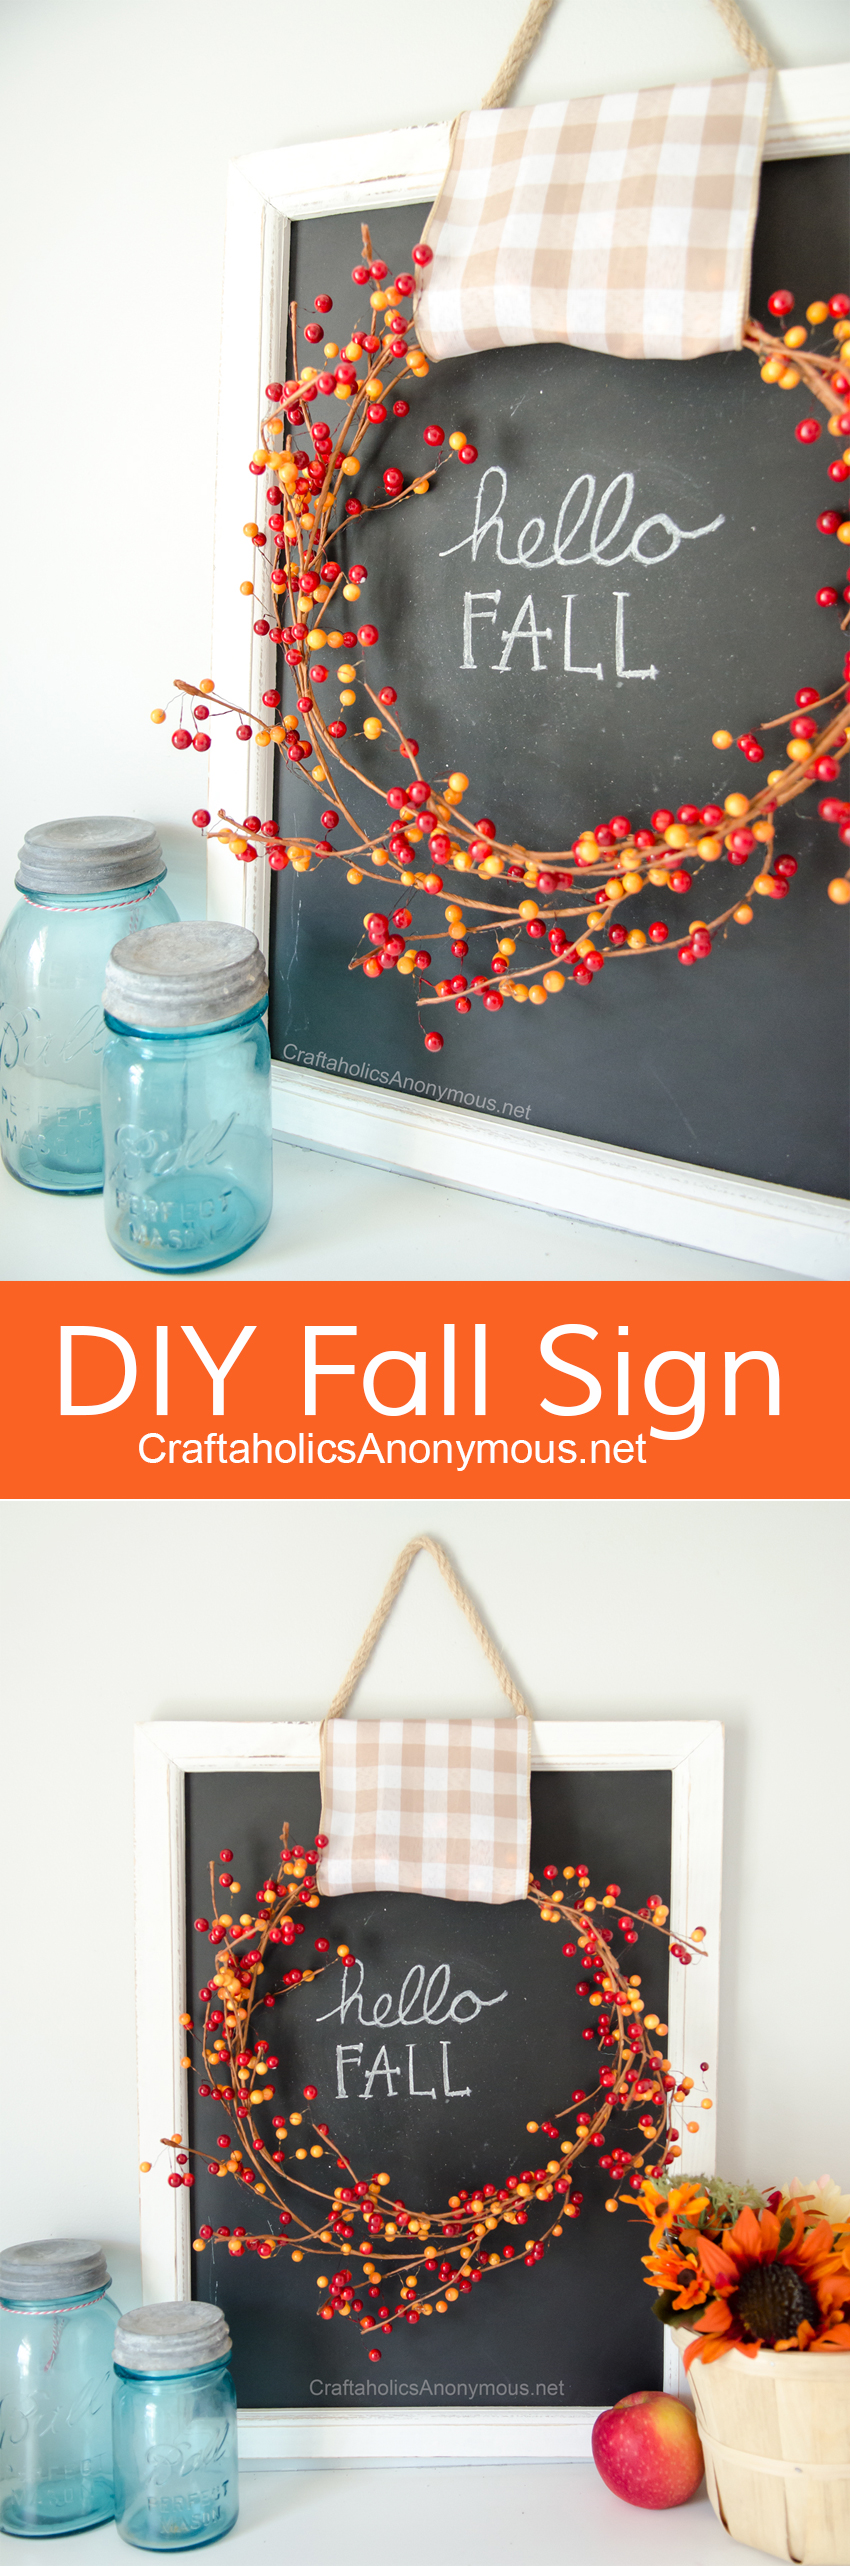 DIY Fall Sign :: Love the berry wreath with the gingham ribbon